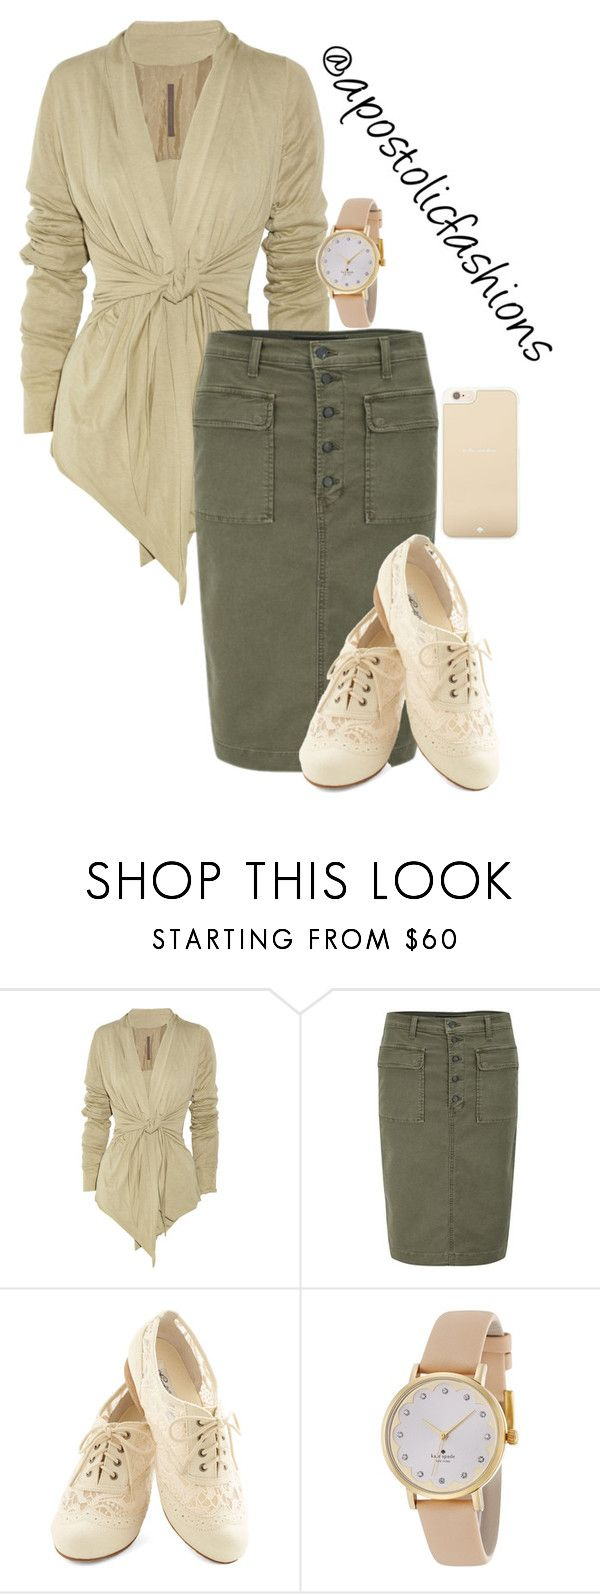 """""""Apostolic Fashions #1241"""" by apostolicfashions ❤ liked on Polyvore featuring Rick Owens Lilies, J Brand and Kate Spade"""